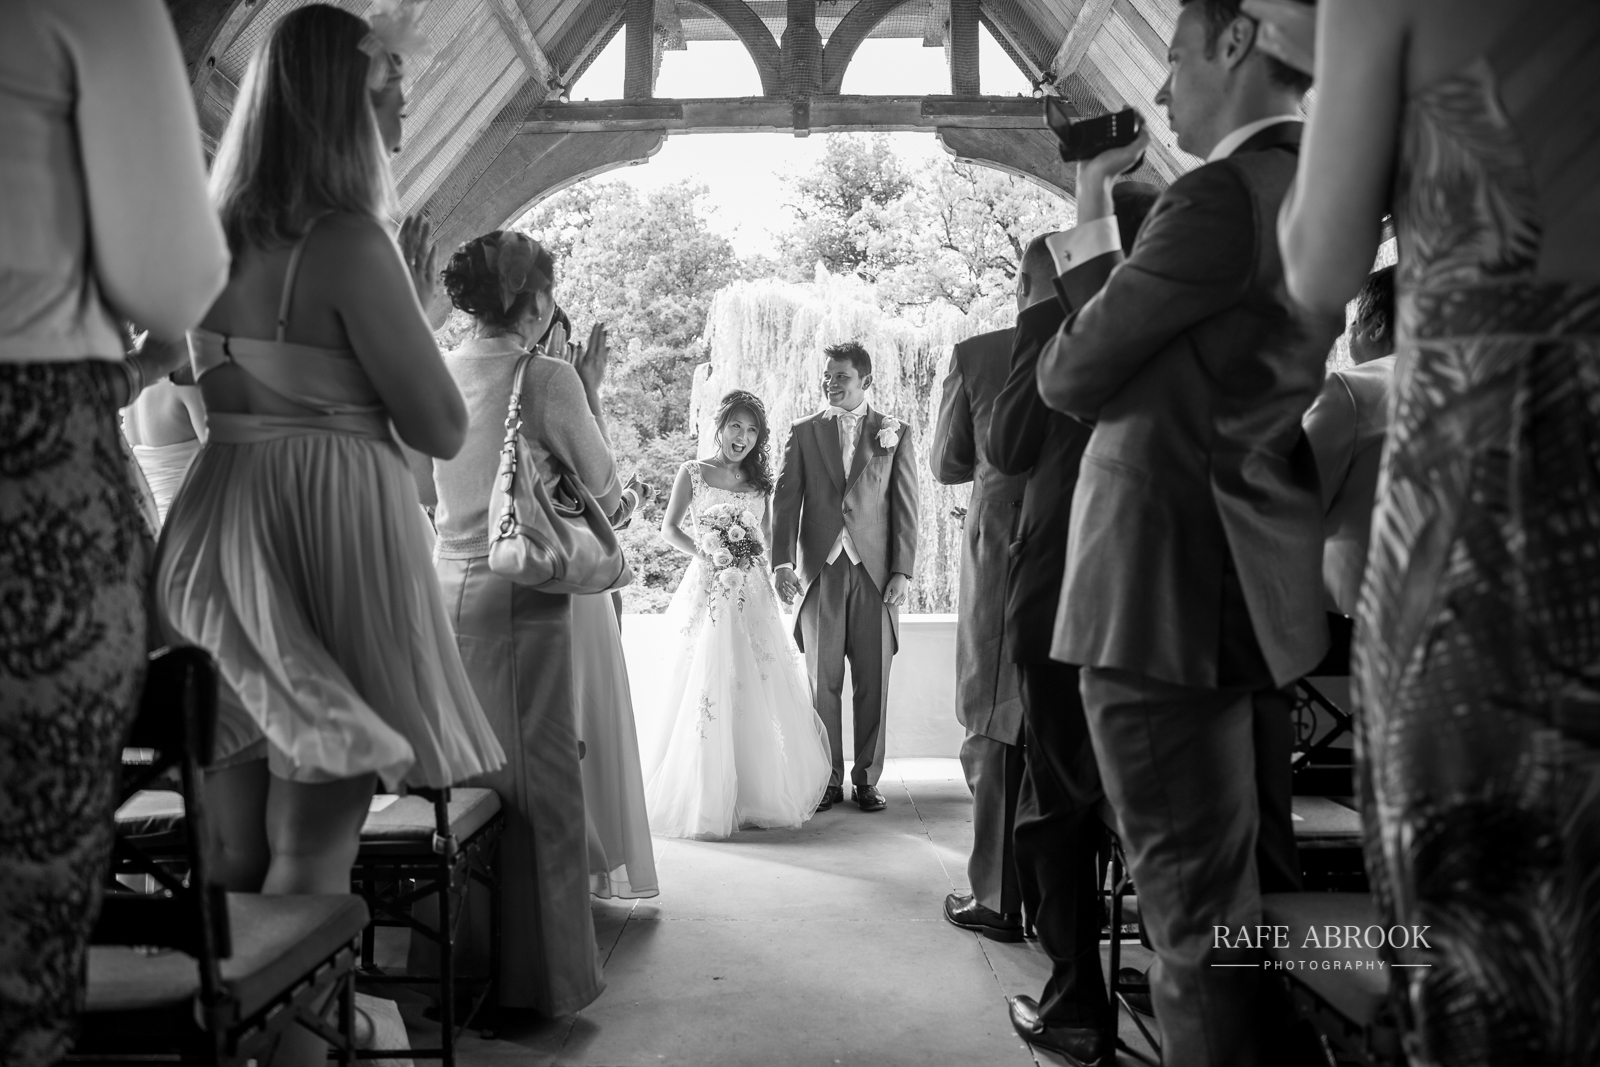 waddesdon manor the dairy aylesbury bucks wedding photographer hertfordshire-1219.jpg